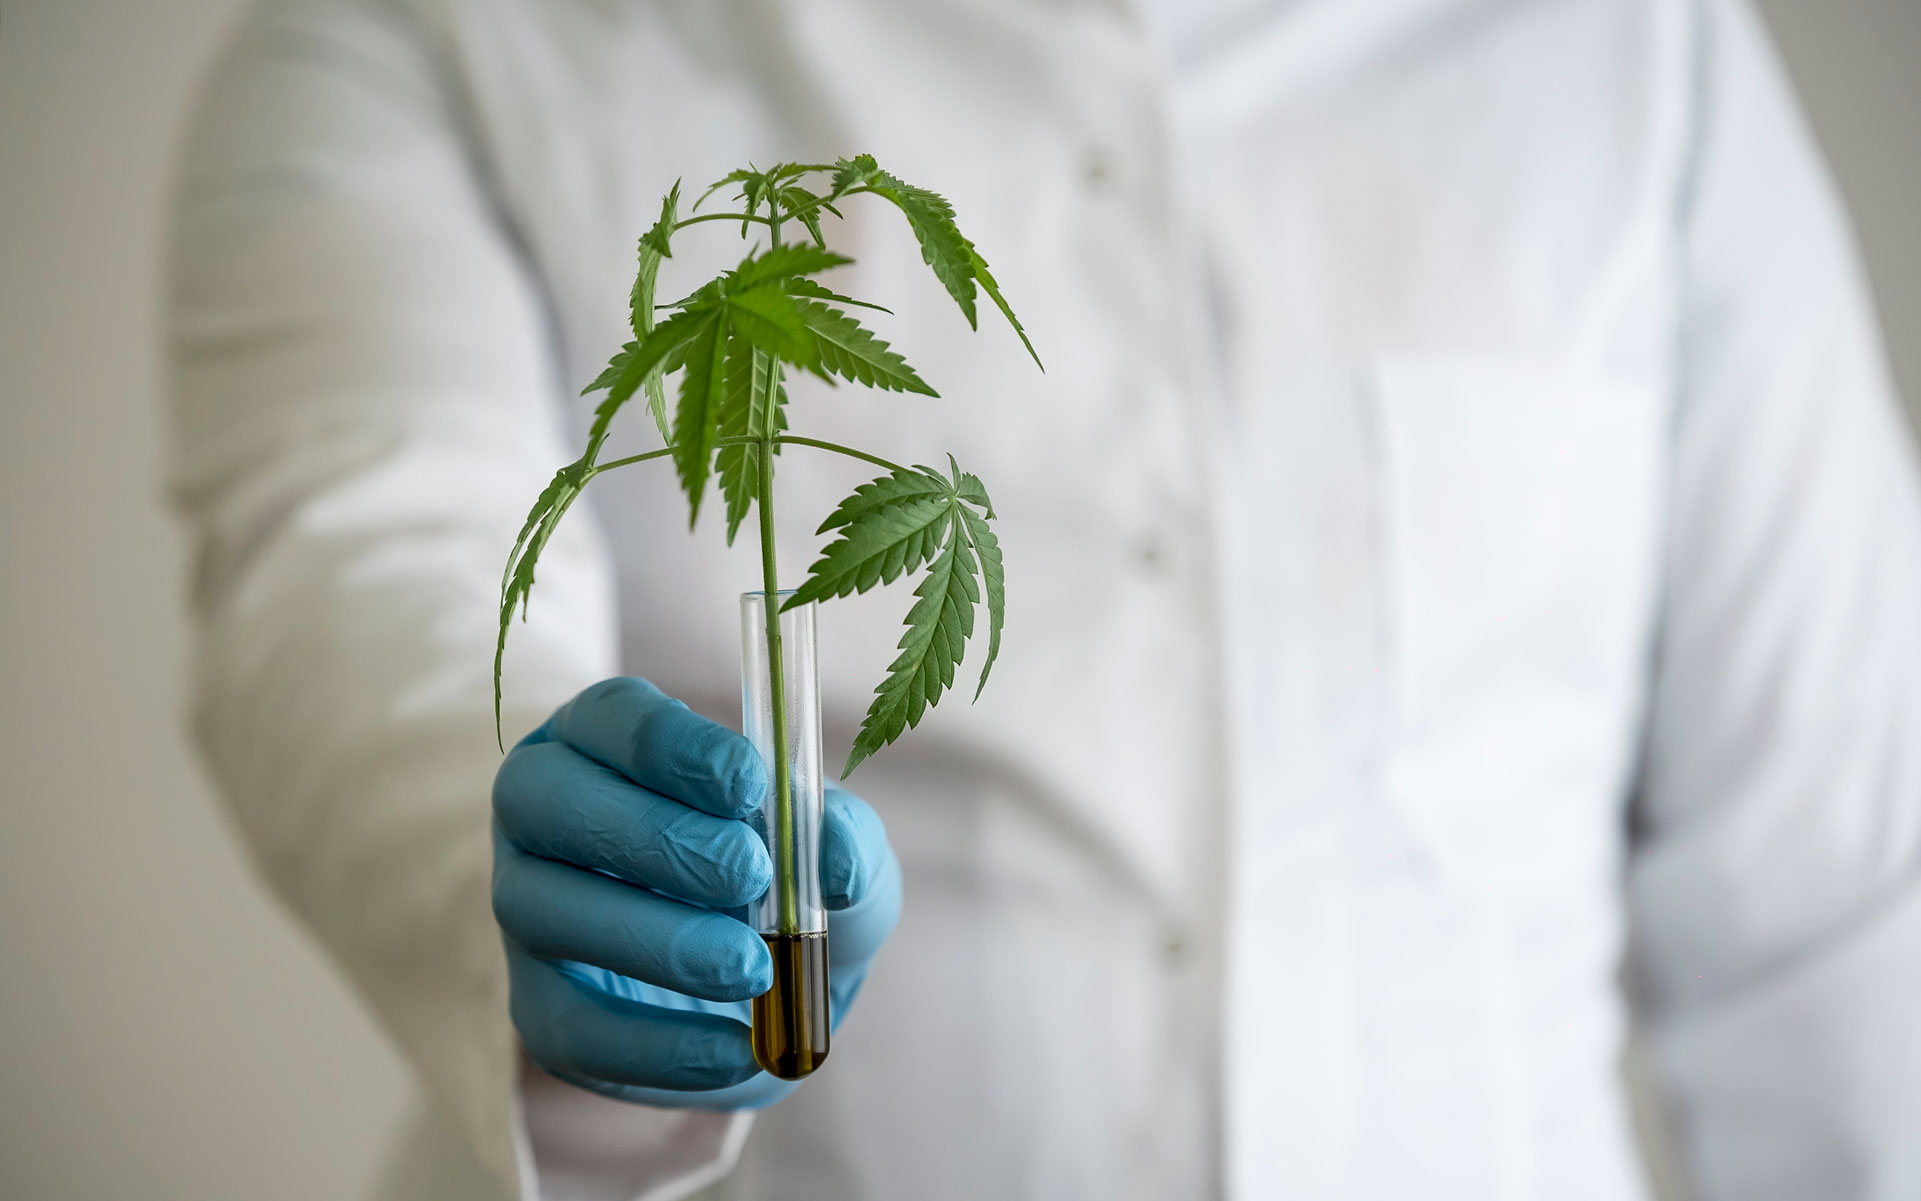 new cannabis research, medical research about effects of marijuana